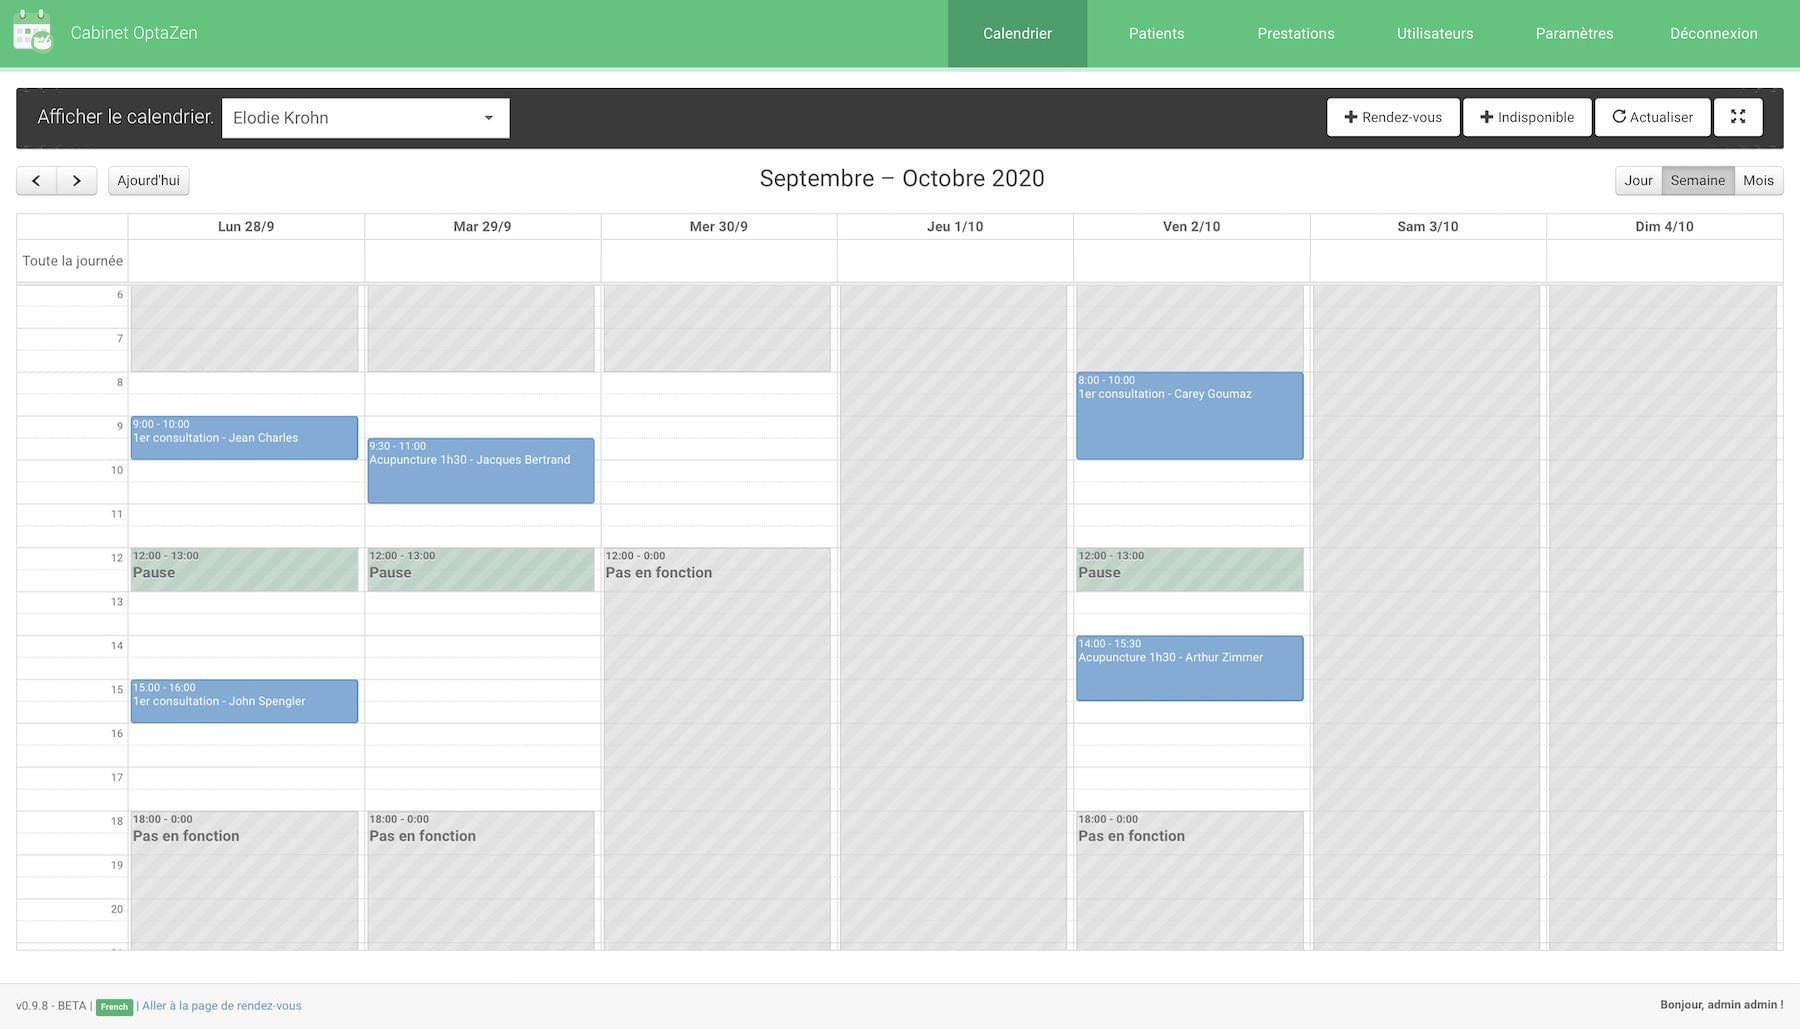 Home page of the online appointment calendar.